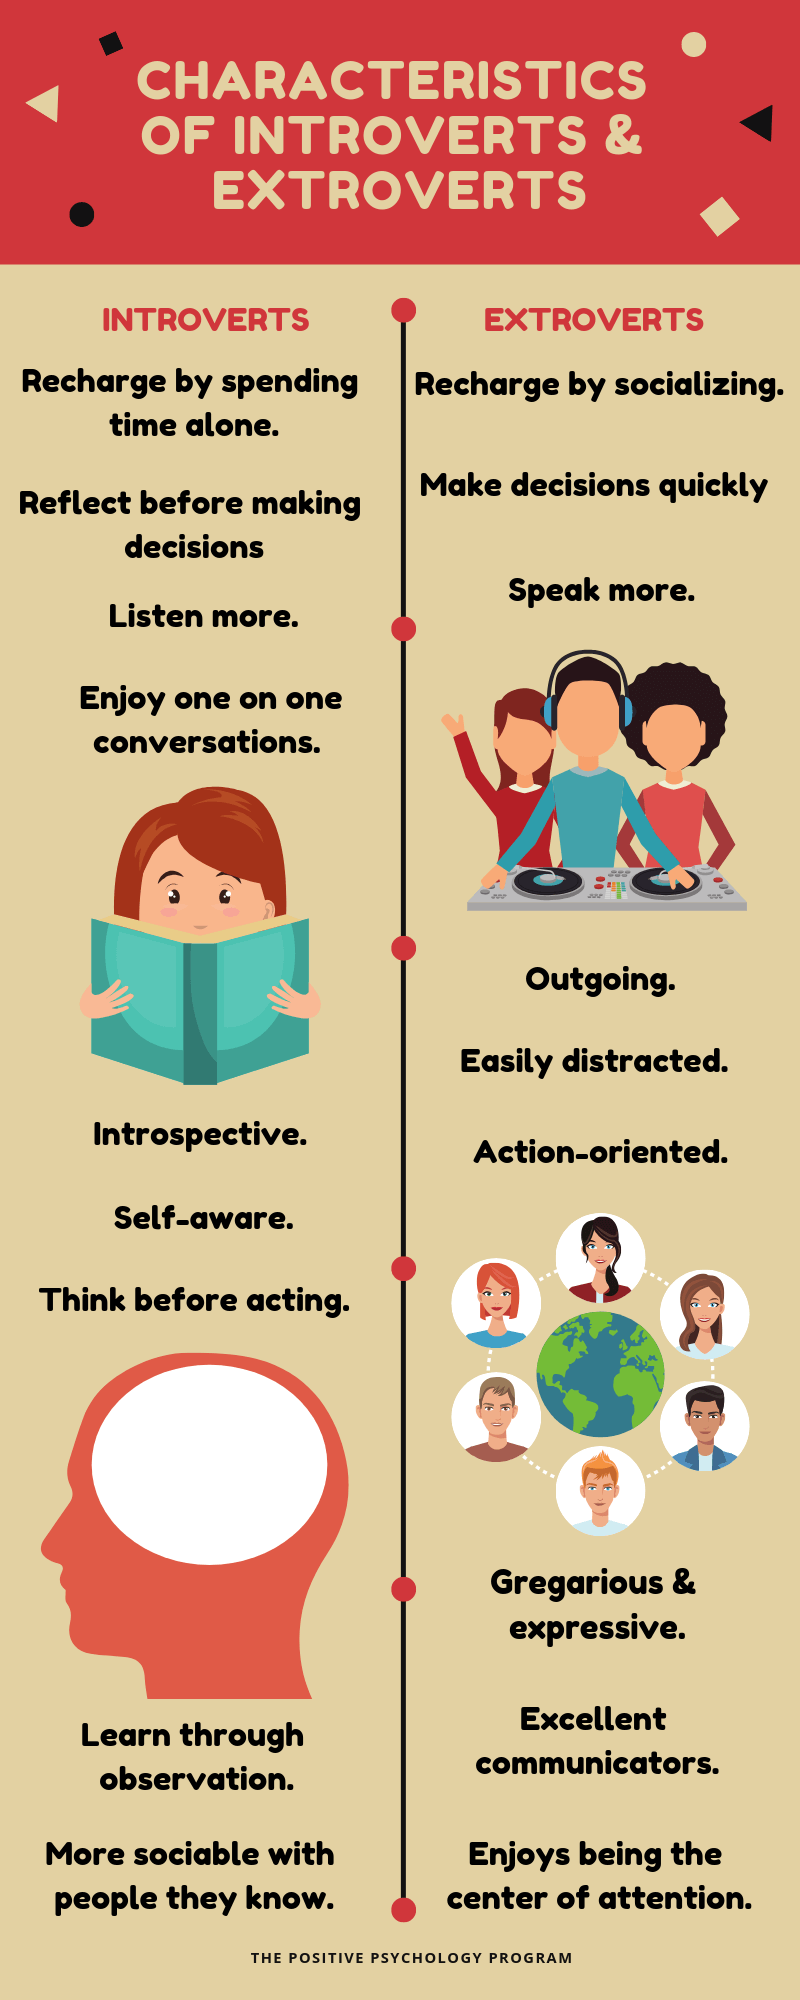 Characteristics of Introverts & Extroverts